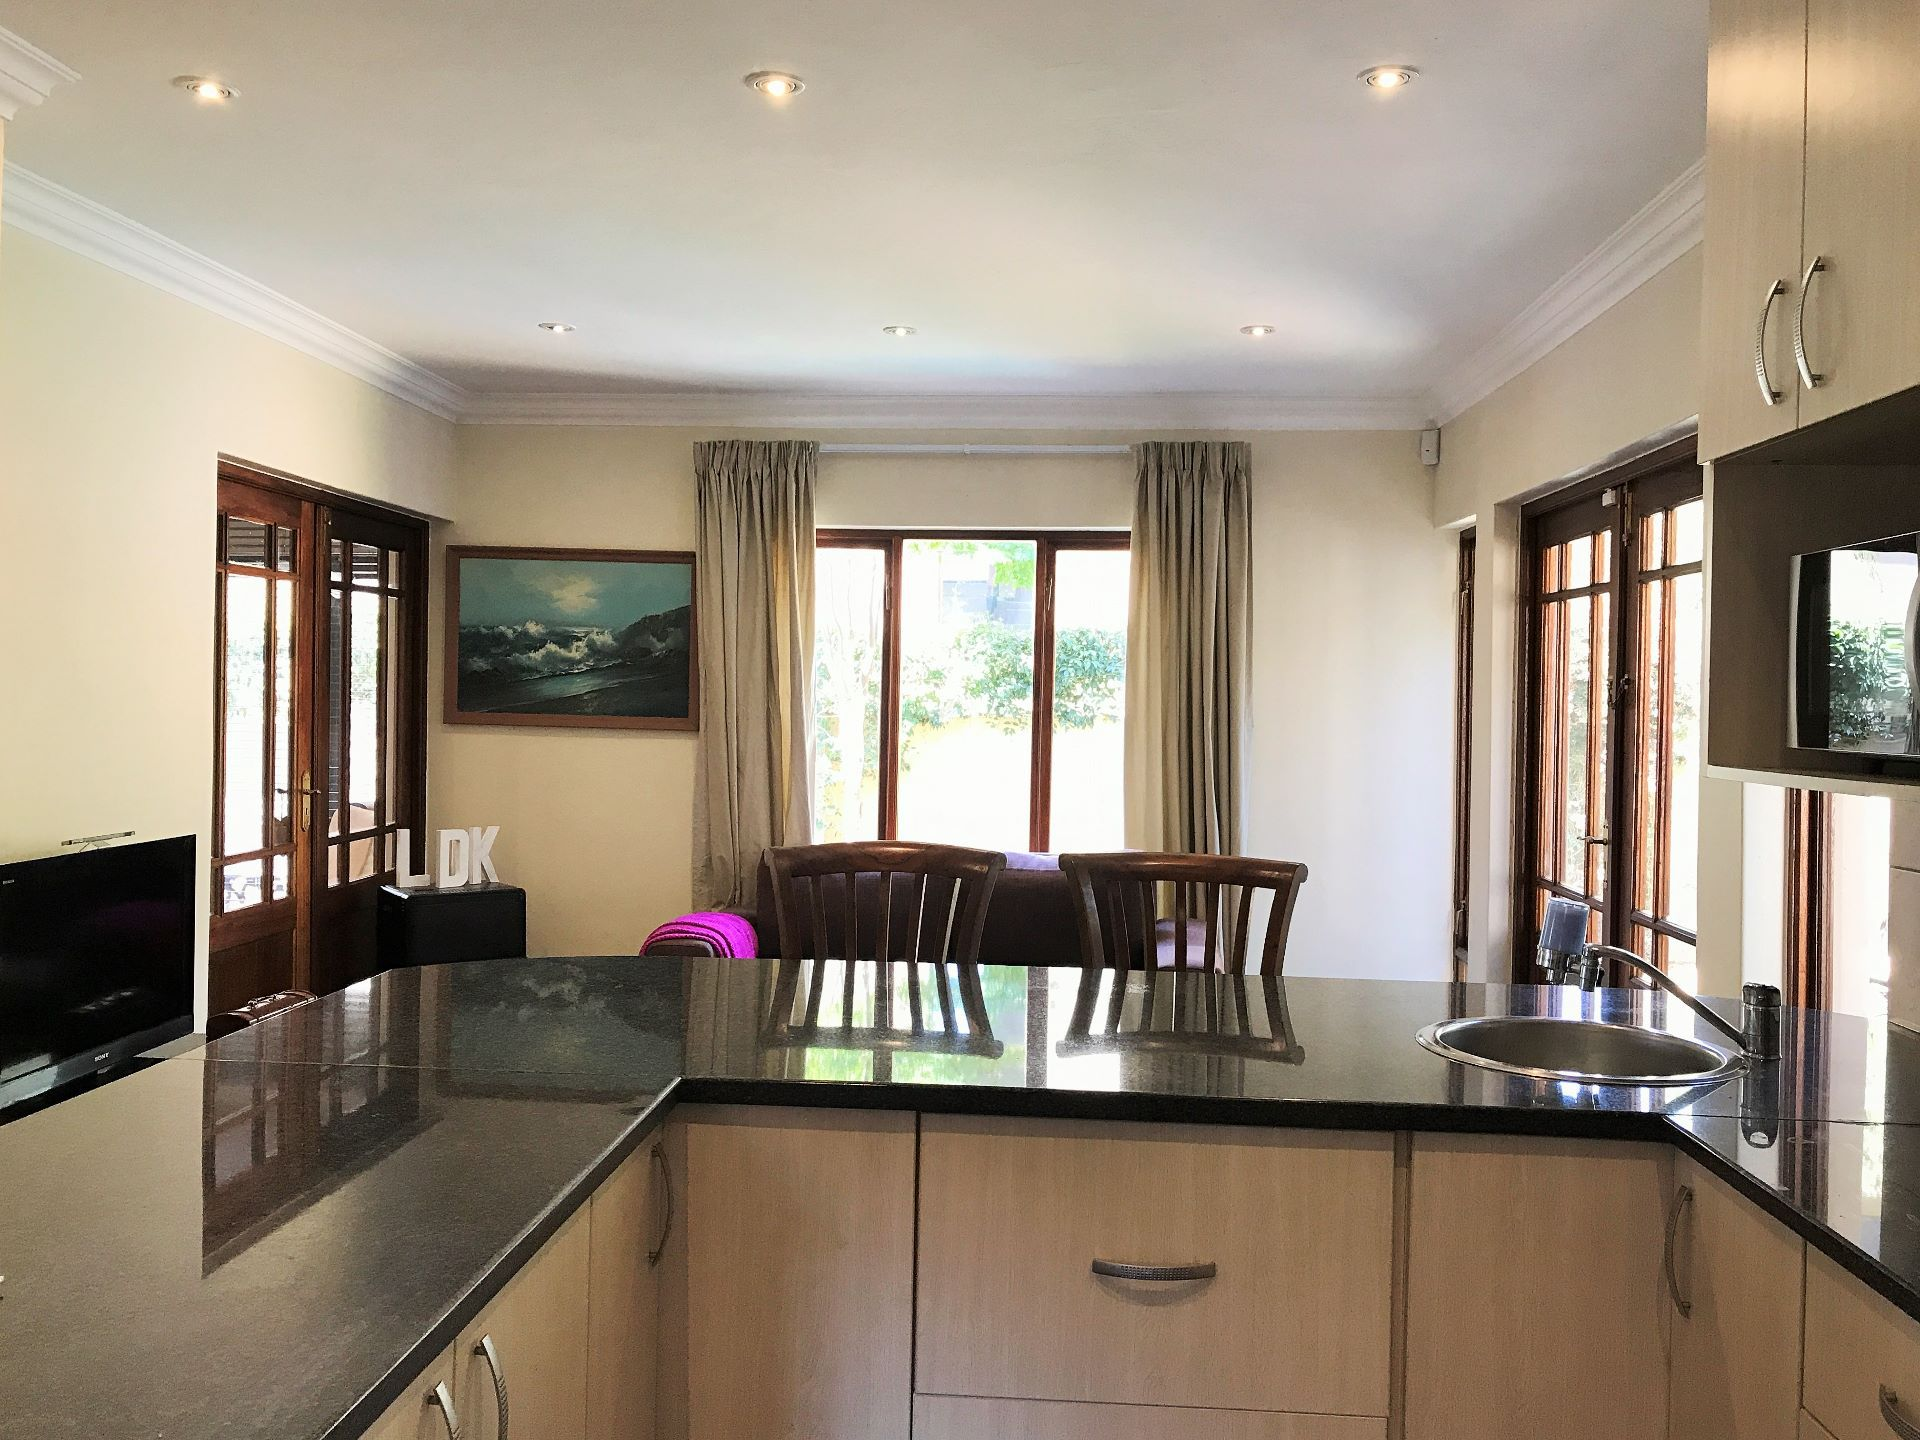 Honeydew Ridge property for sale. Ref No: 13518143. Picture no 9